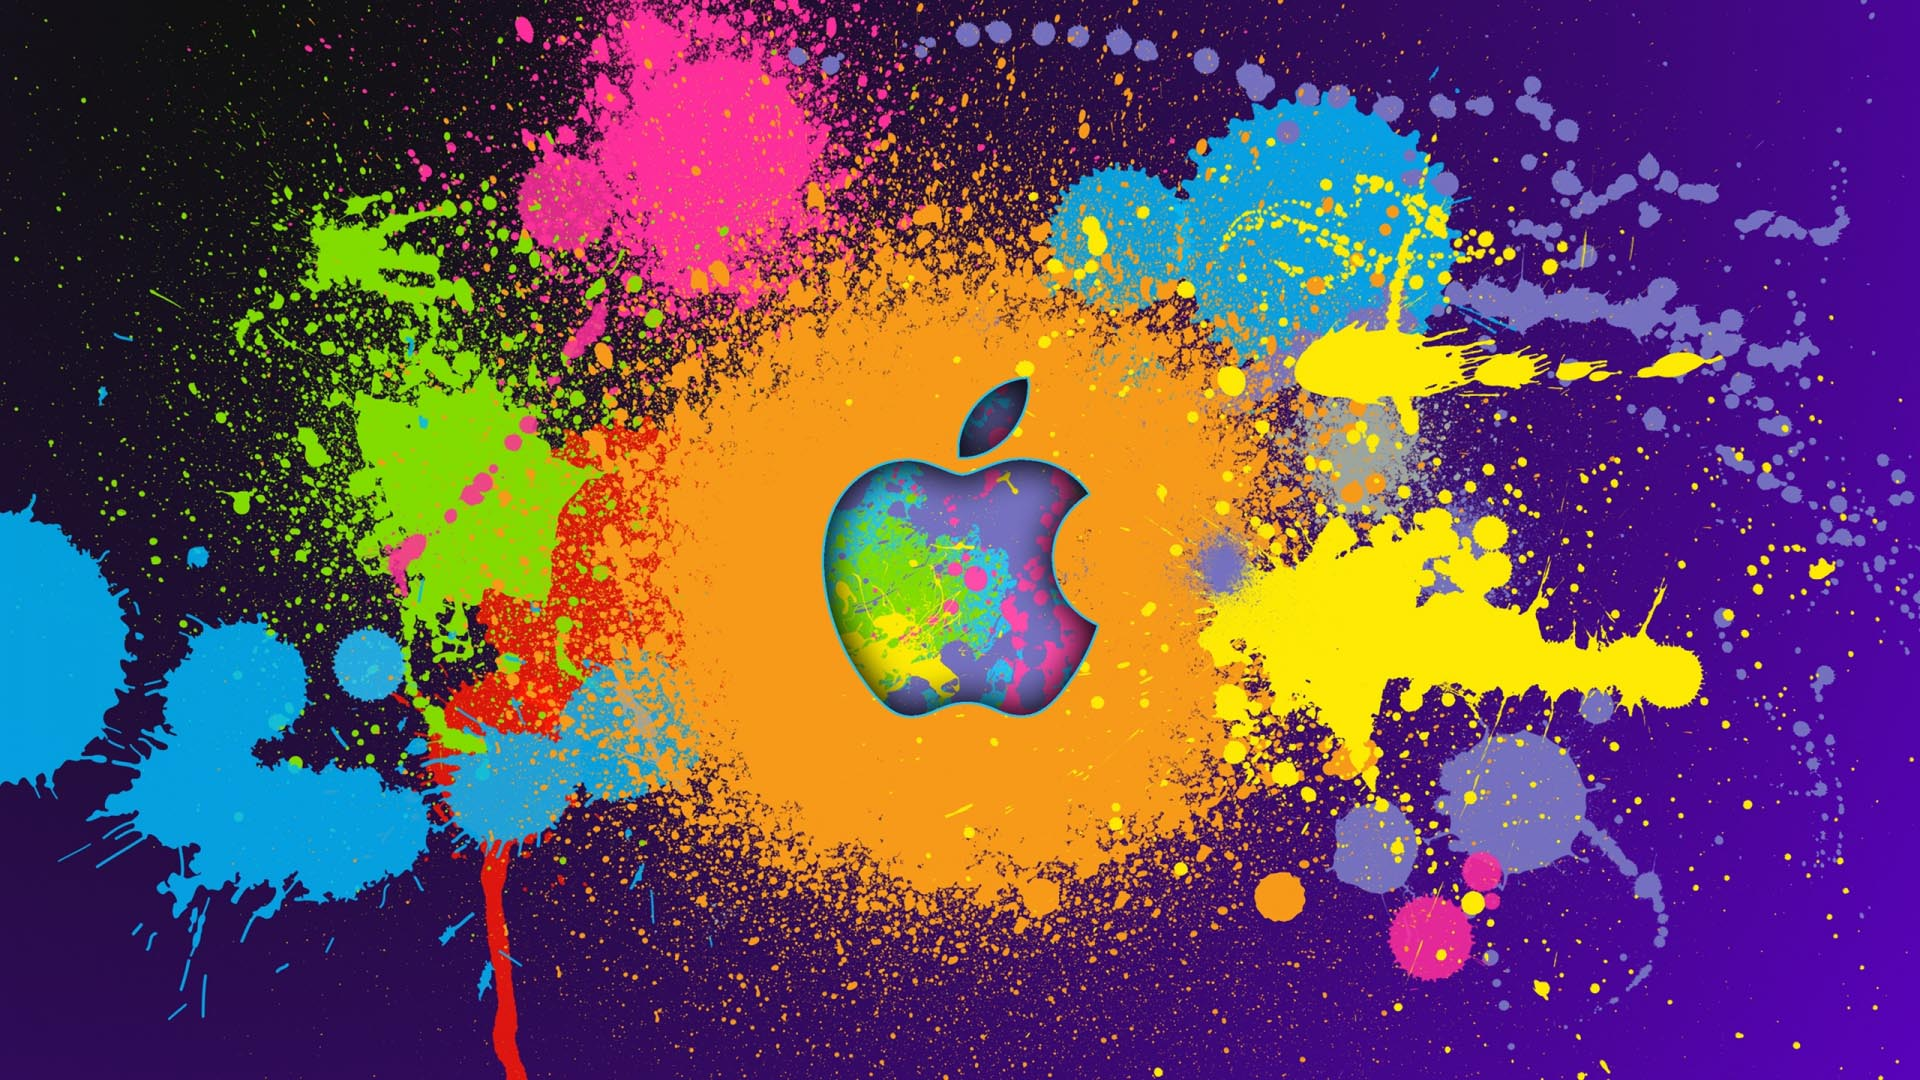 cool apple backgrounds #6